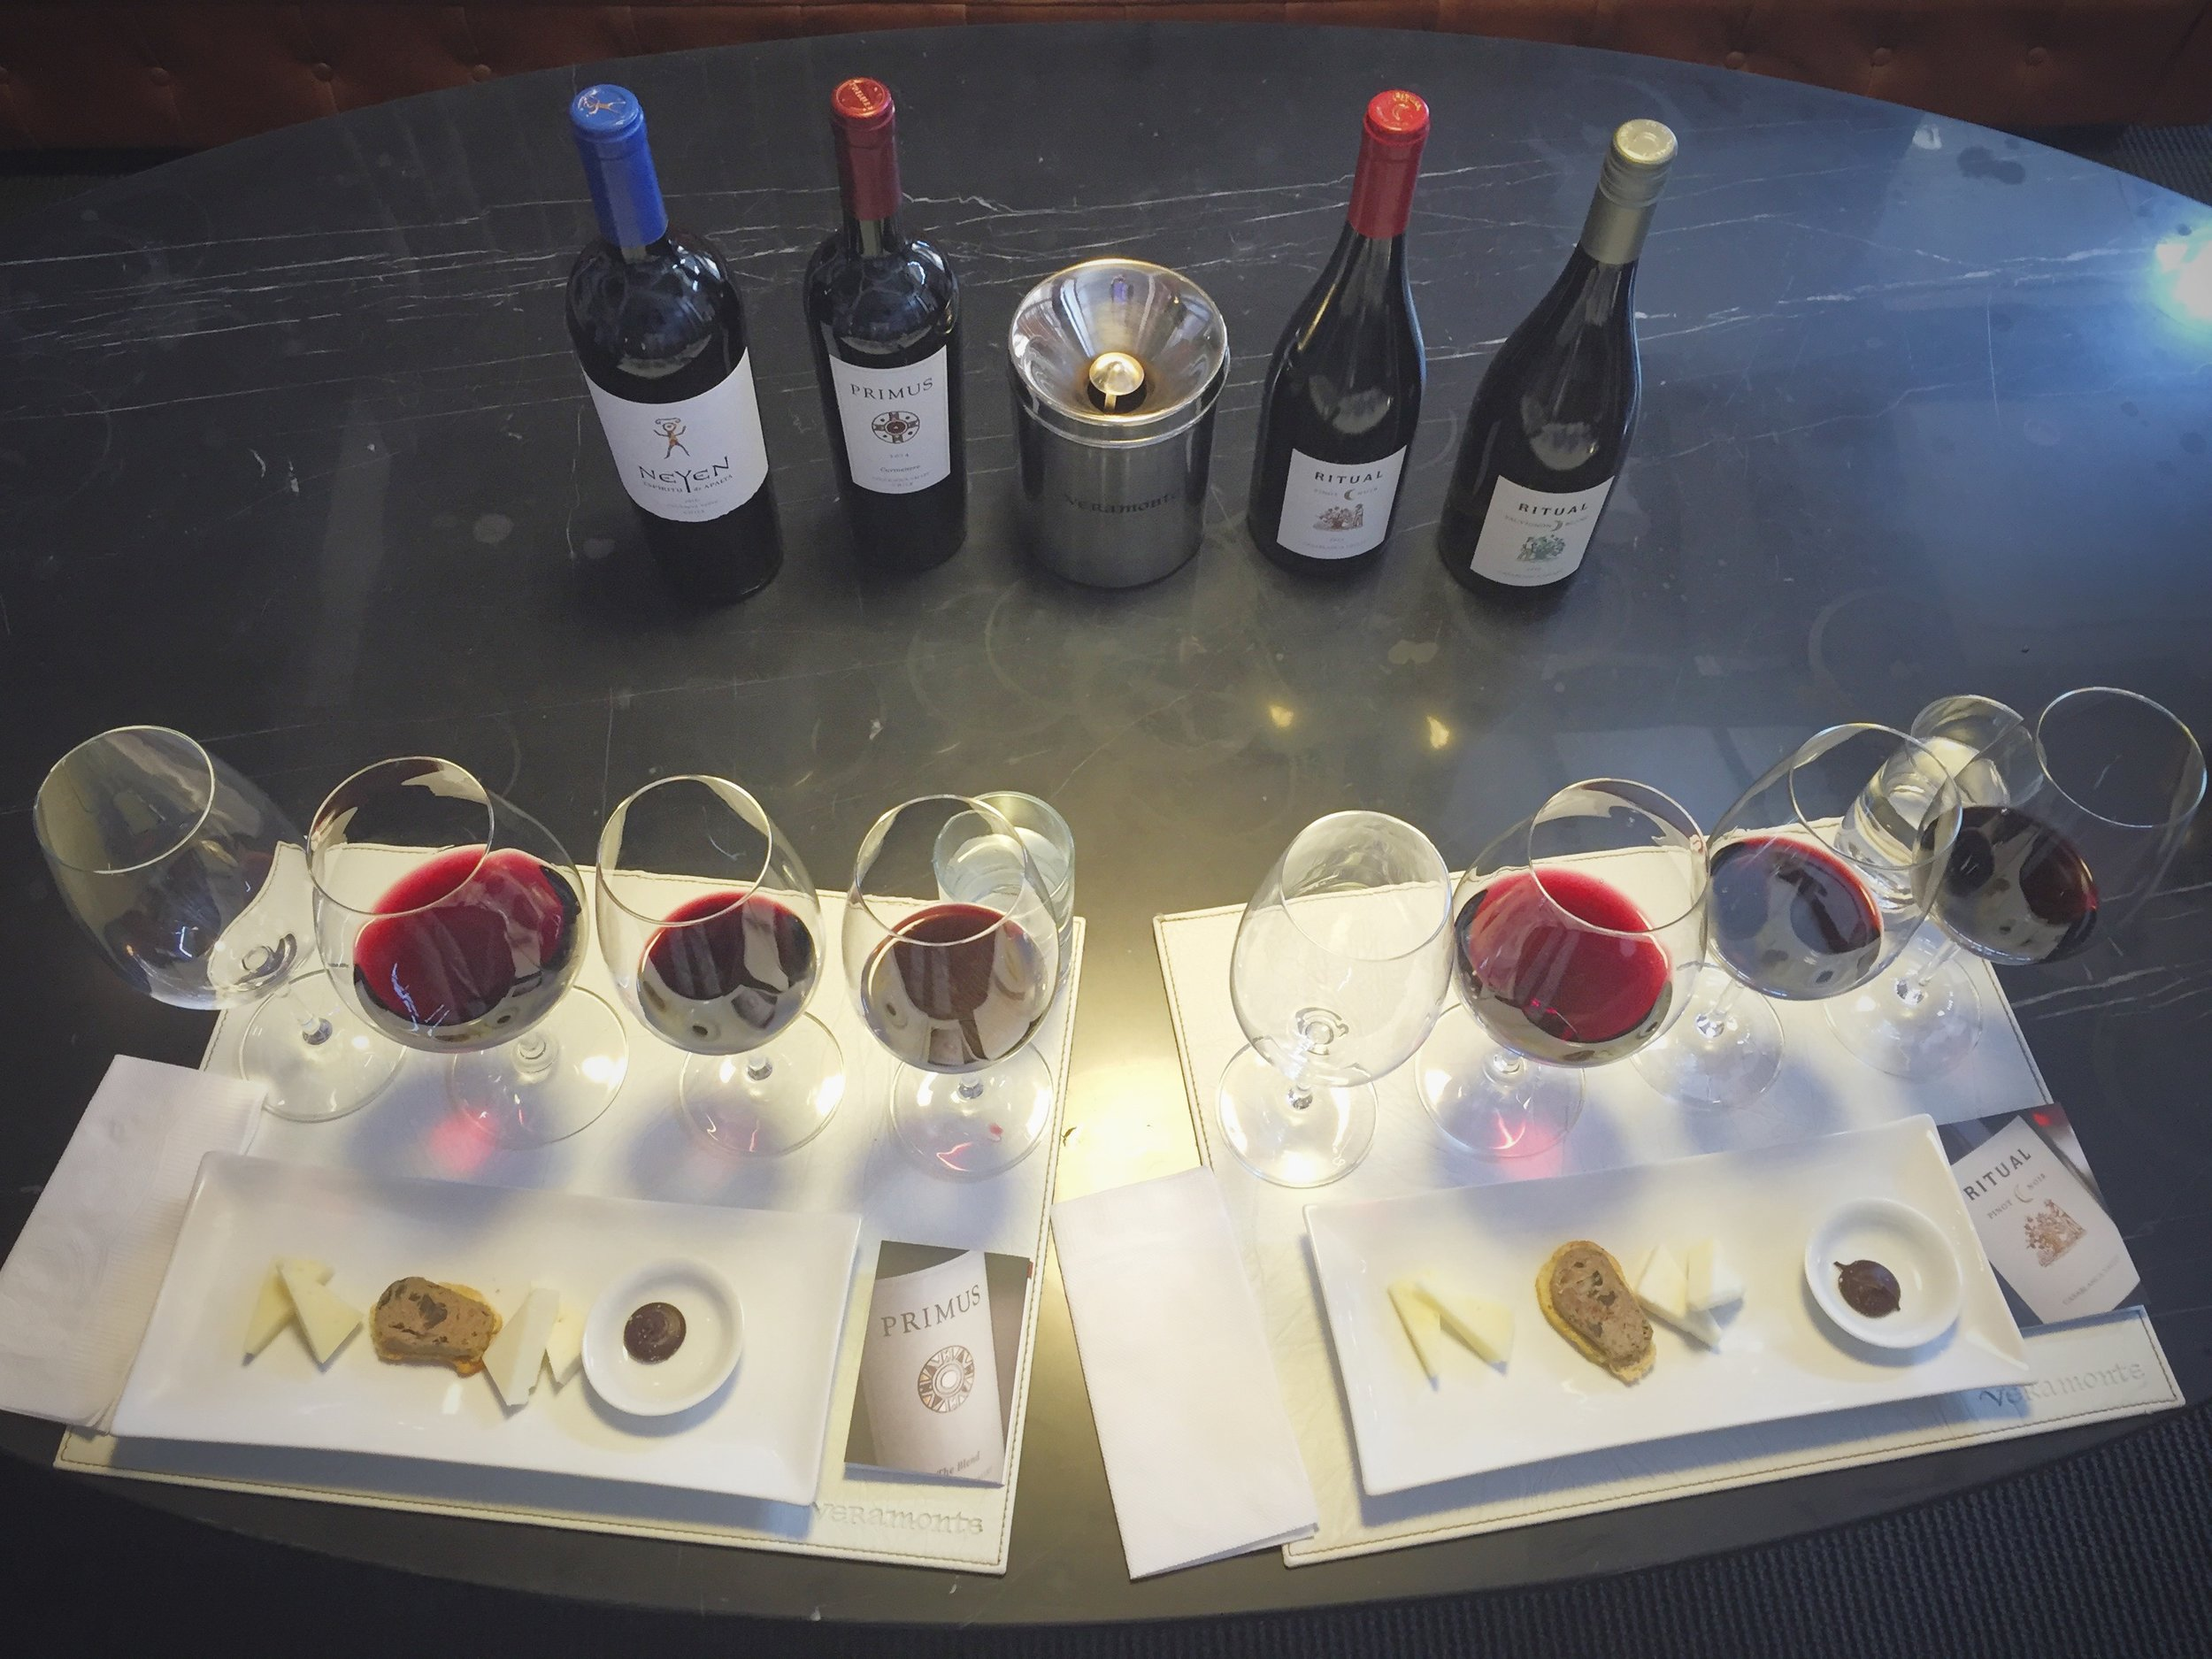 Wine loves food. At Viña Veramonte, savor the pairings of sauvignon blanc, pinot noir, Carmenere, and Carmenere/Cabernet blend with a sheep milk cheese, mushroom pate, semi-hard cheeses, and salted dark chocolate truffle, respectively.